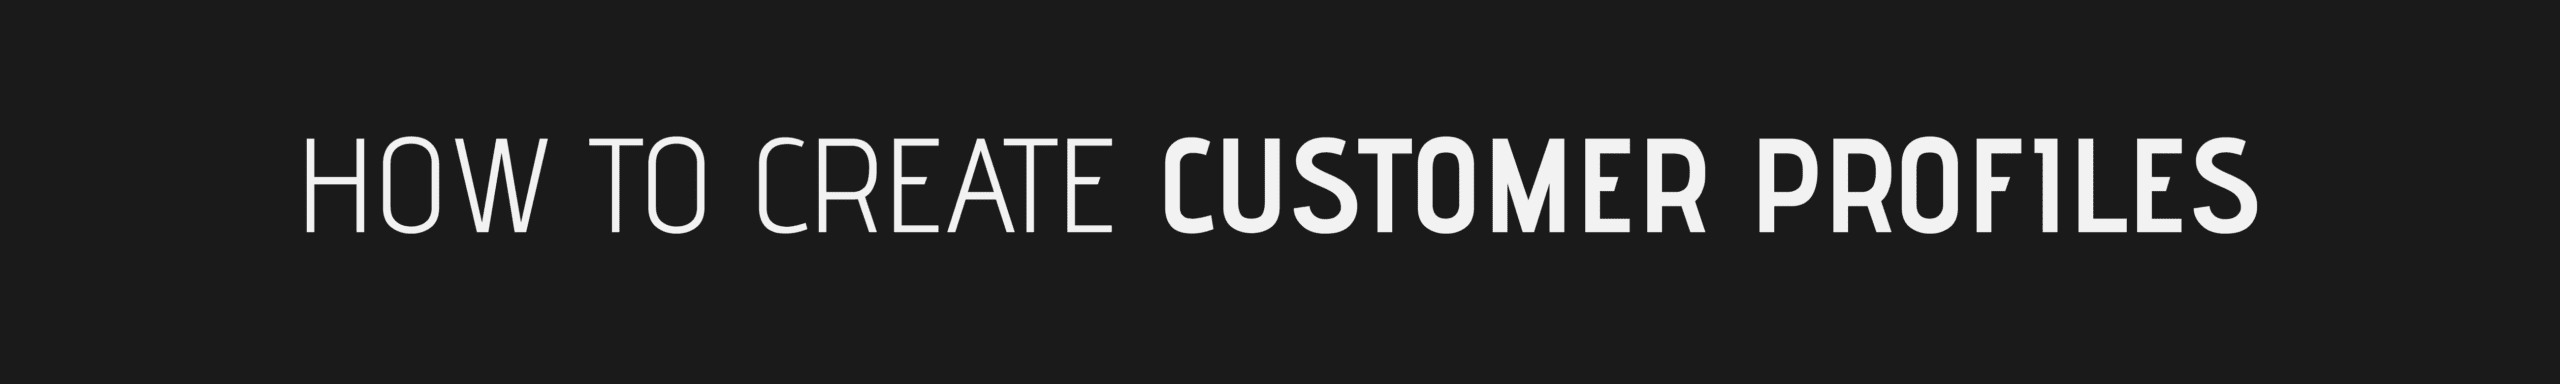 What is a step toward creating a customer profile? How To Crate Consumer Profiles Steps Banner.